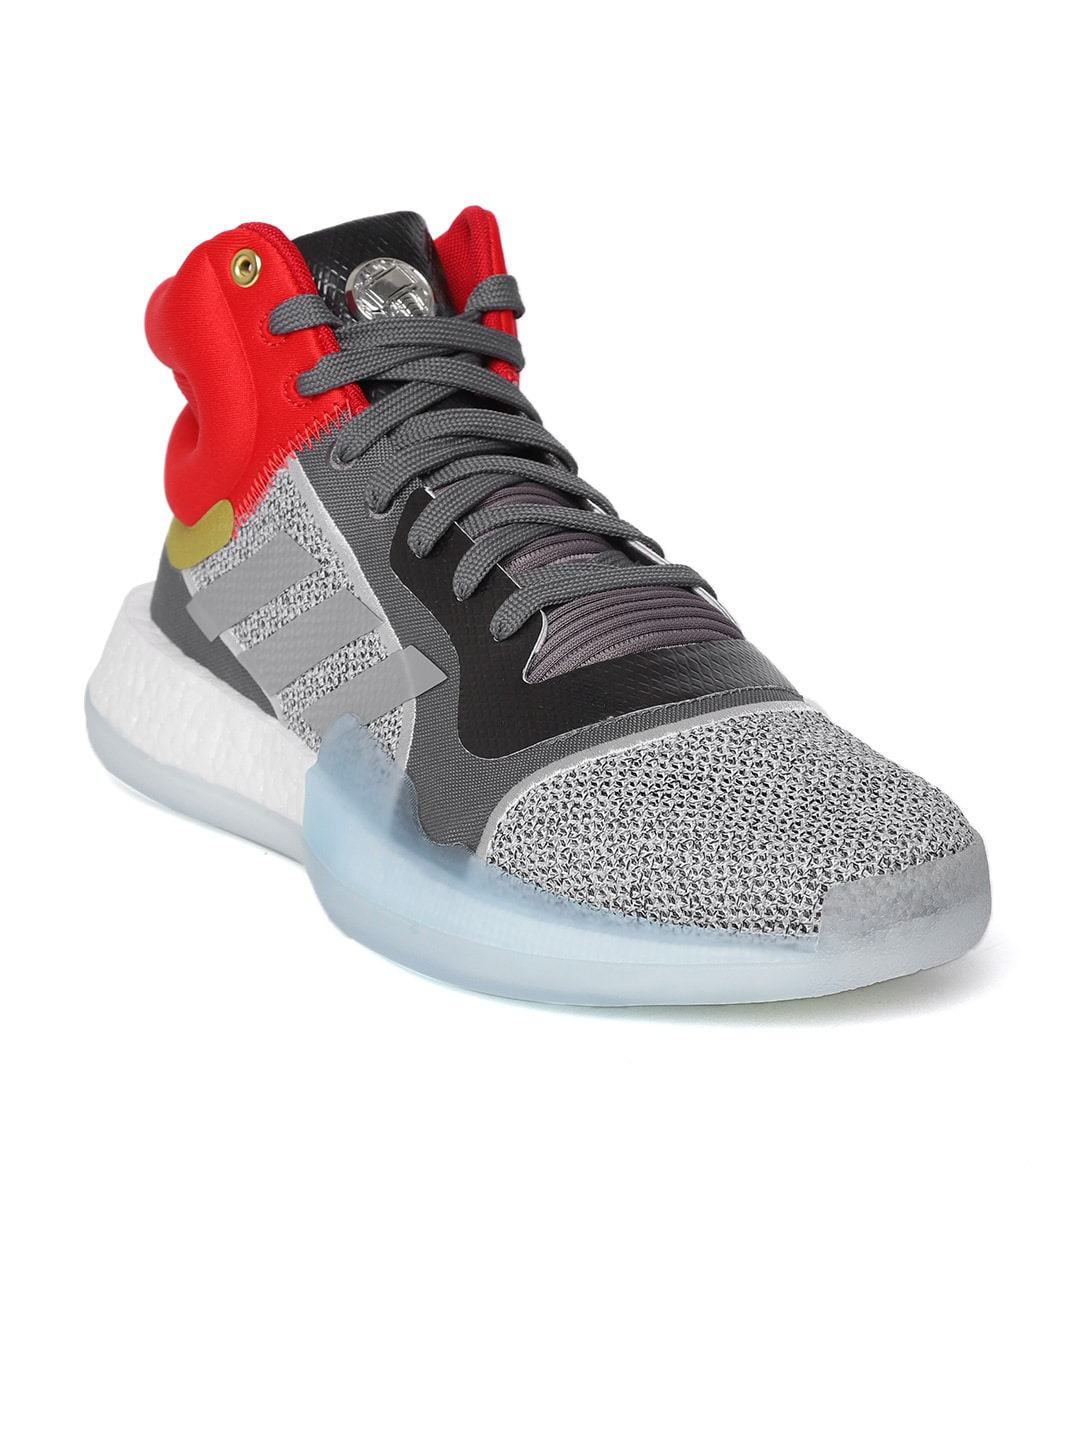 buy popular 6b9a9 13669 Adidas Shoes - Buy Adidas Shoes for Men   Women Online - Myntra